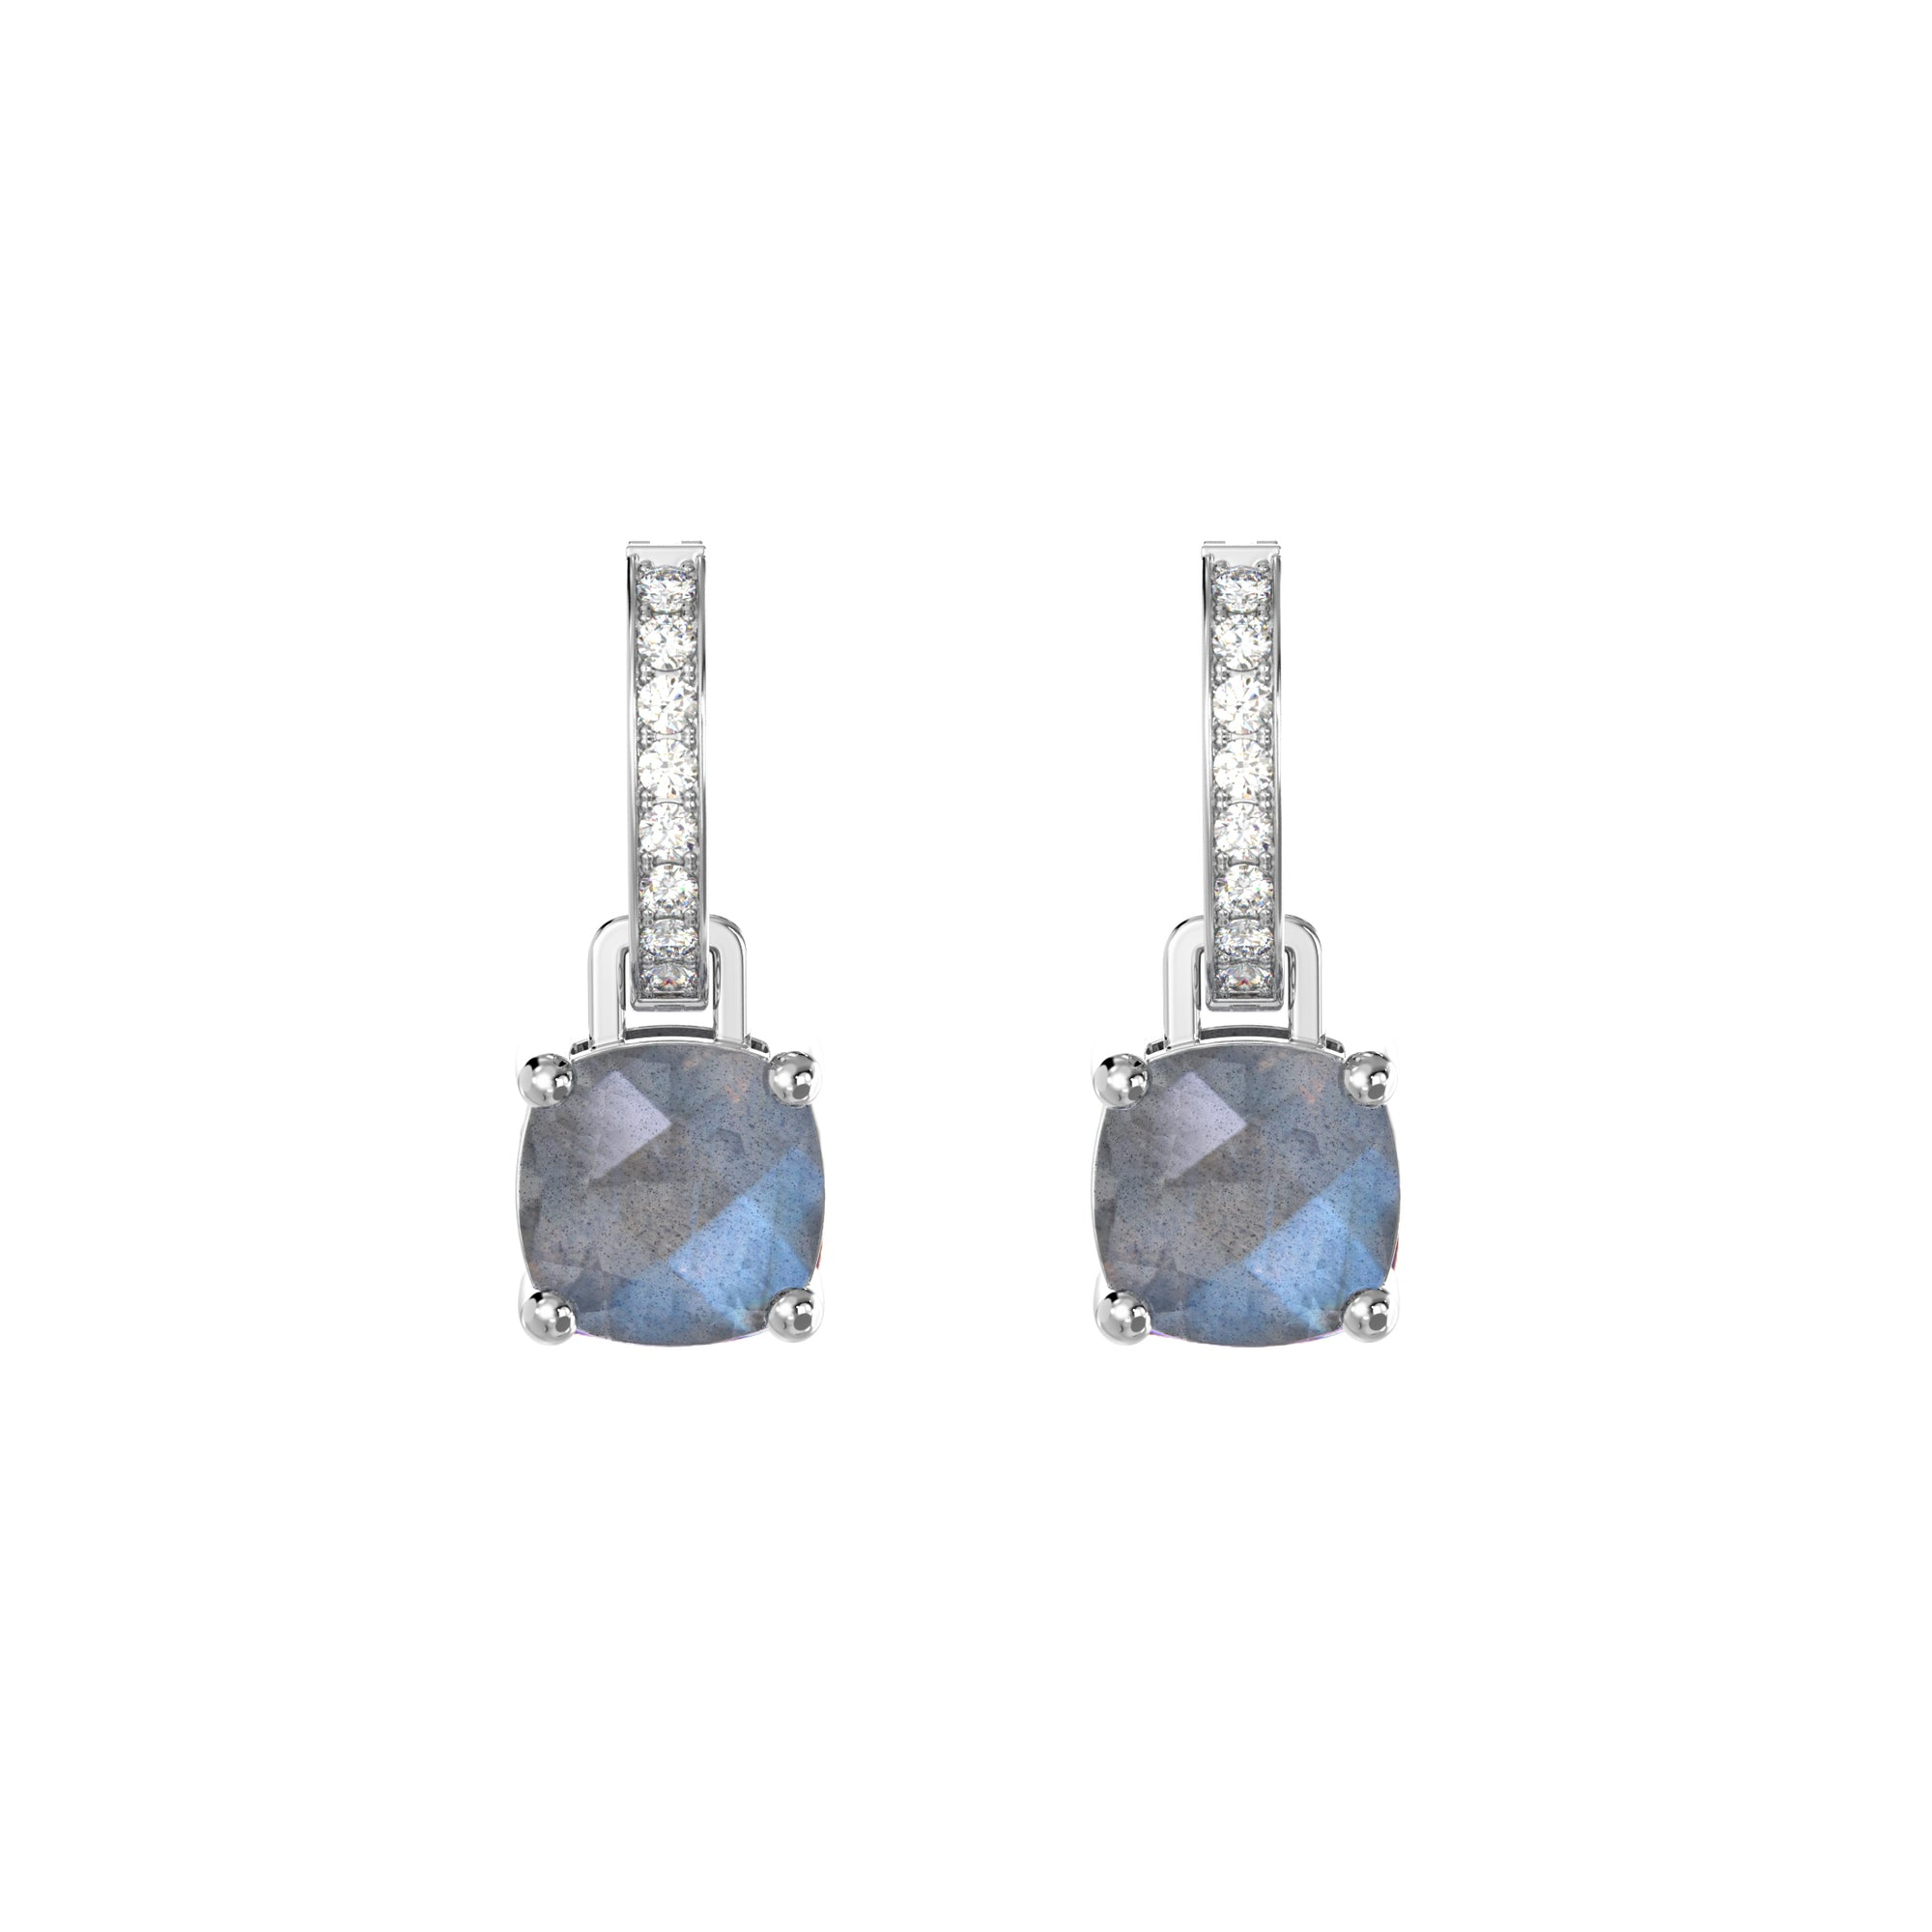 925 Silver Luxe Series Earrings Charms - Wylie (Labradorite)